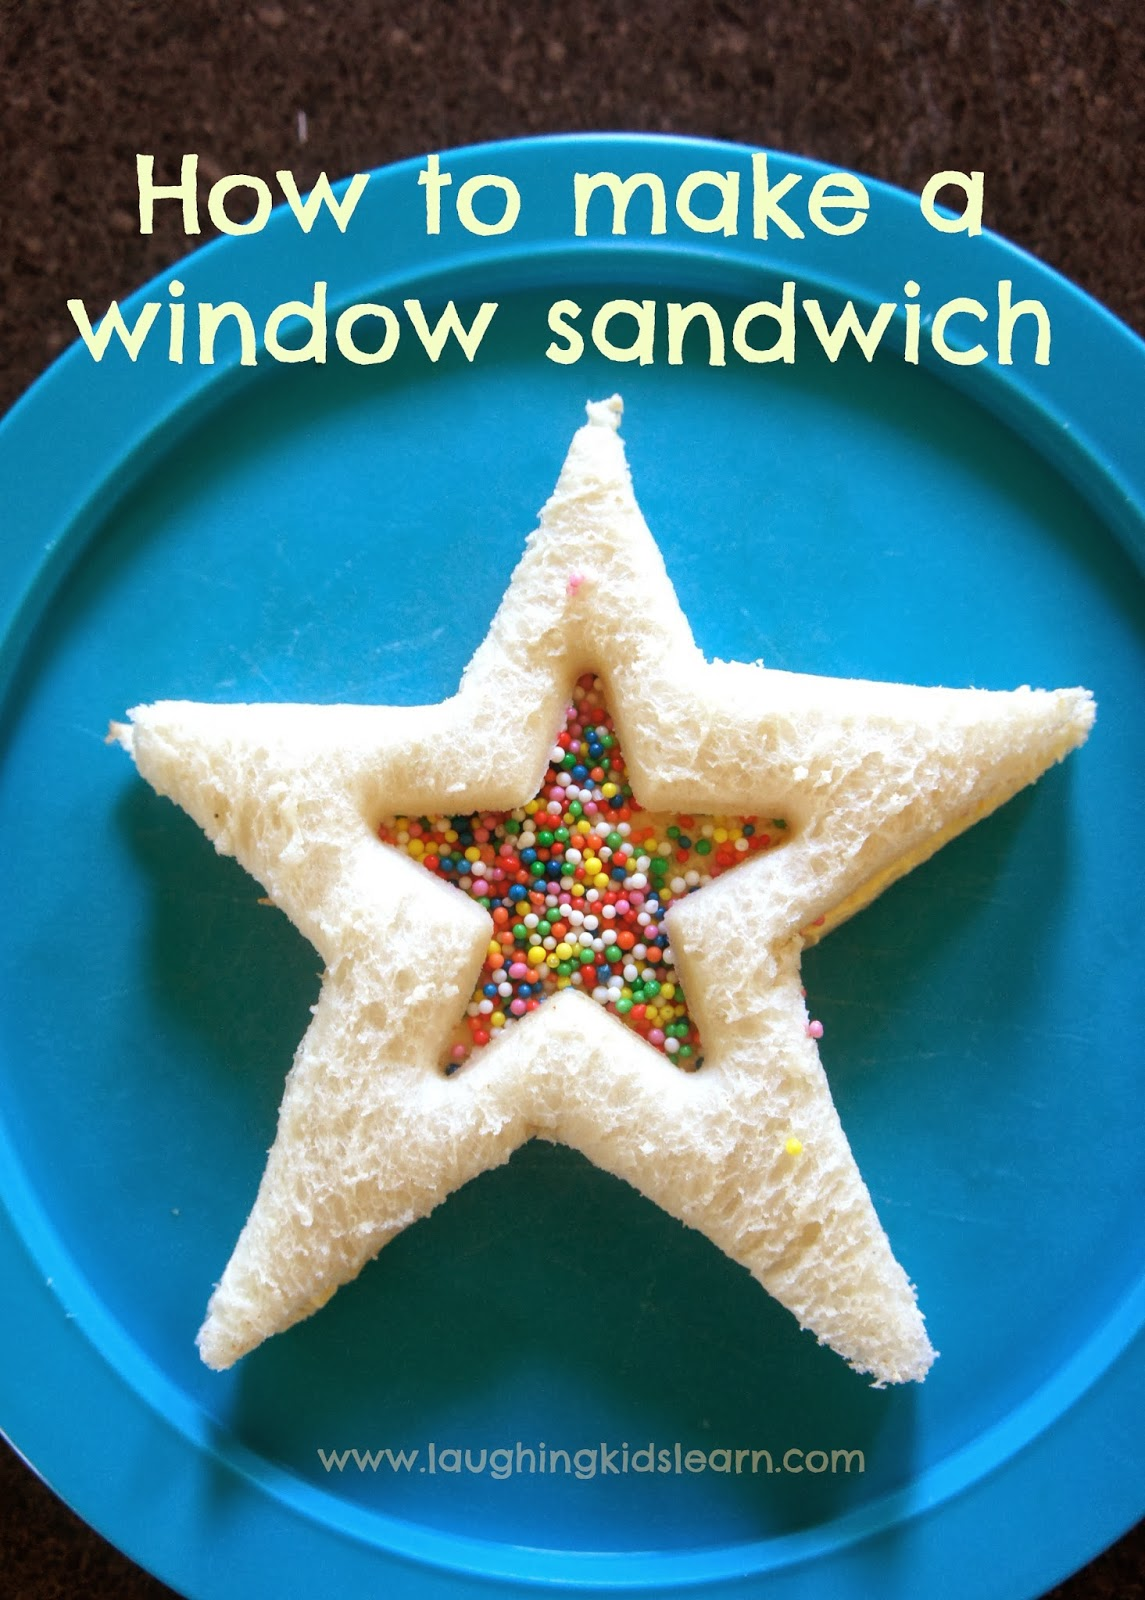 How to make a window sandwich - Laughing Kids Learn